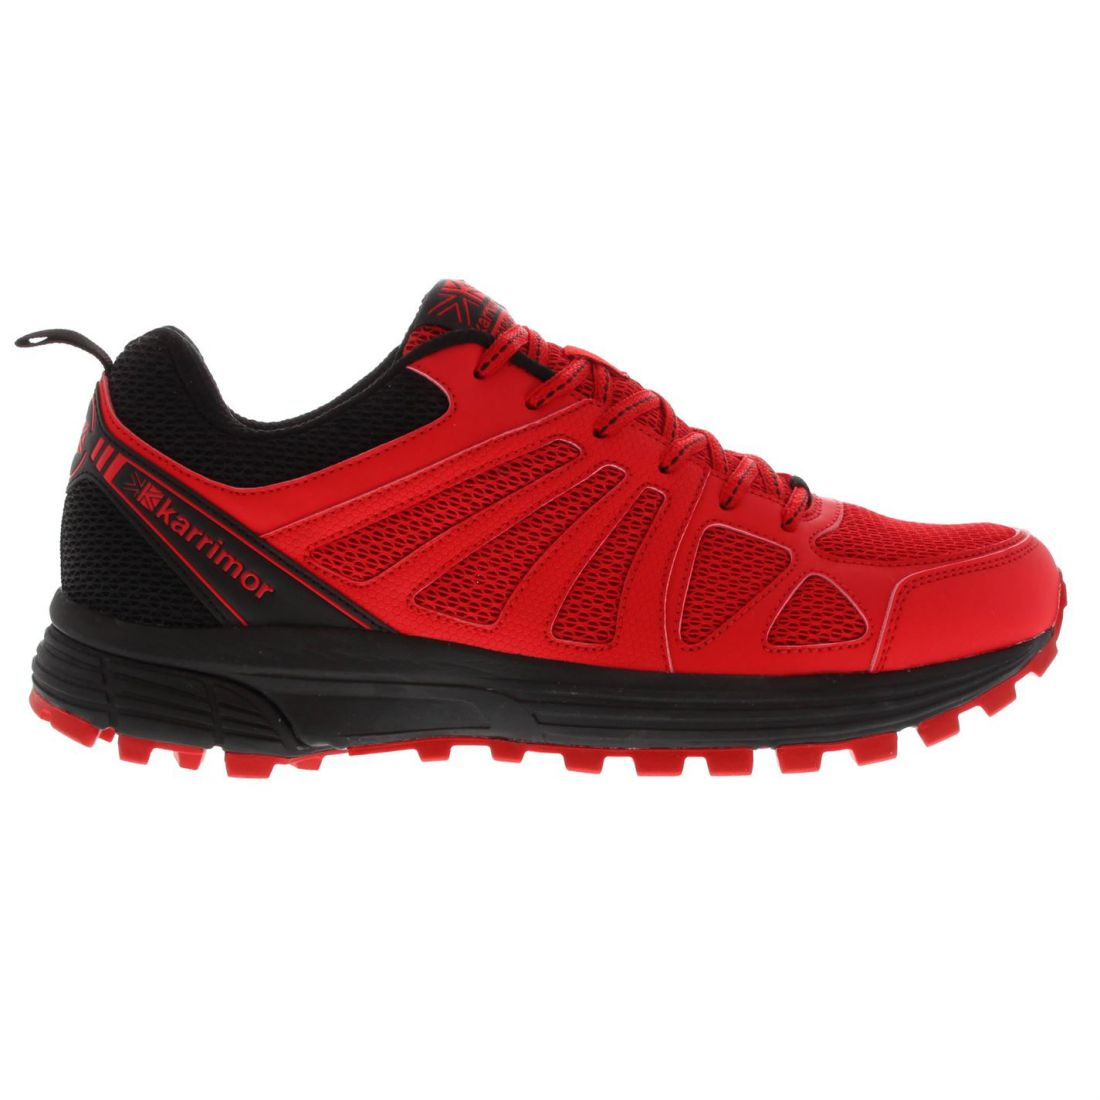 Karrimor-Men-Caracal-Trail-Running-Shoes-Trainers-Lace-Up-Breathable-Mesh-Panels thumbnail 3